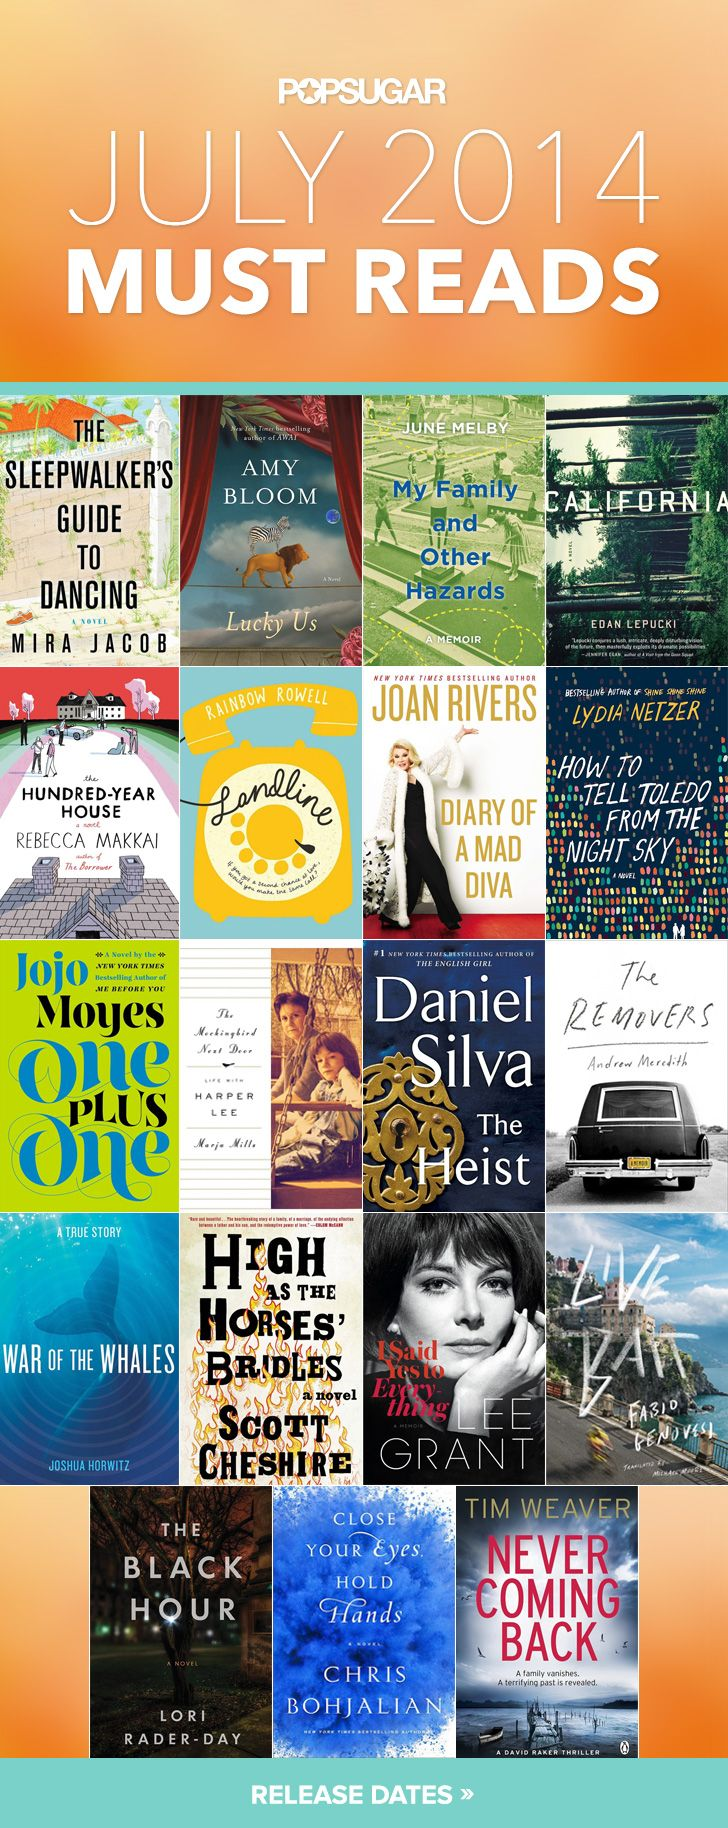 July 2014 Must Reads  All The Books Look Great, Except Joan Rivers I